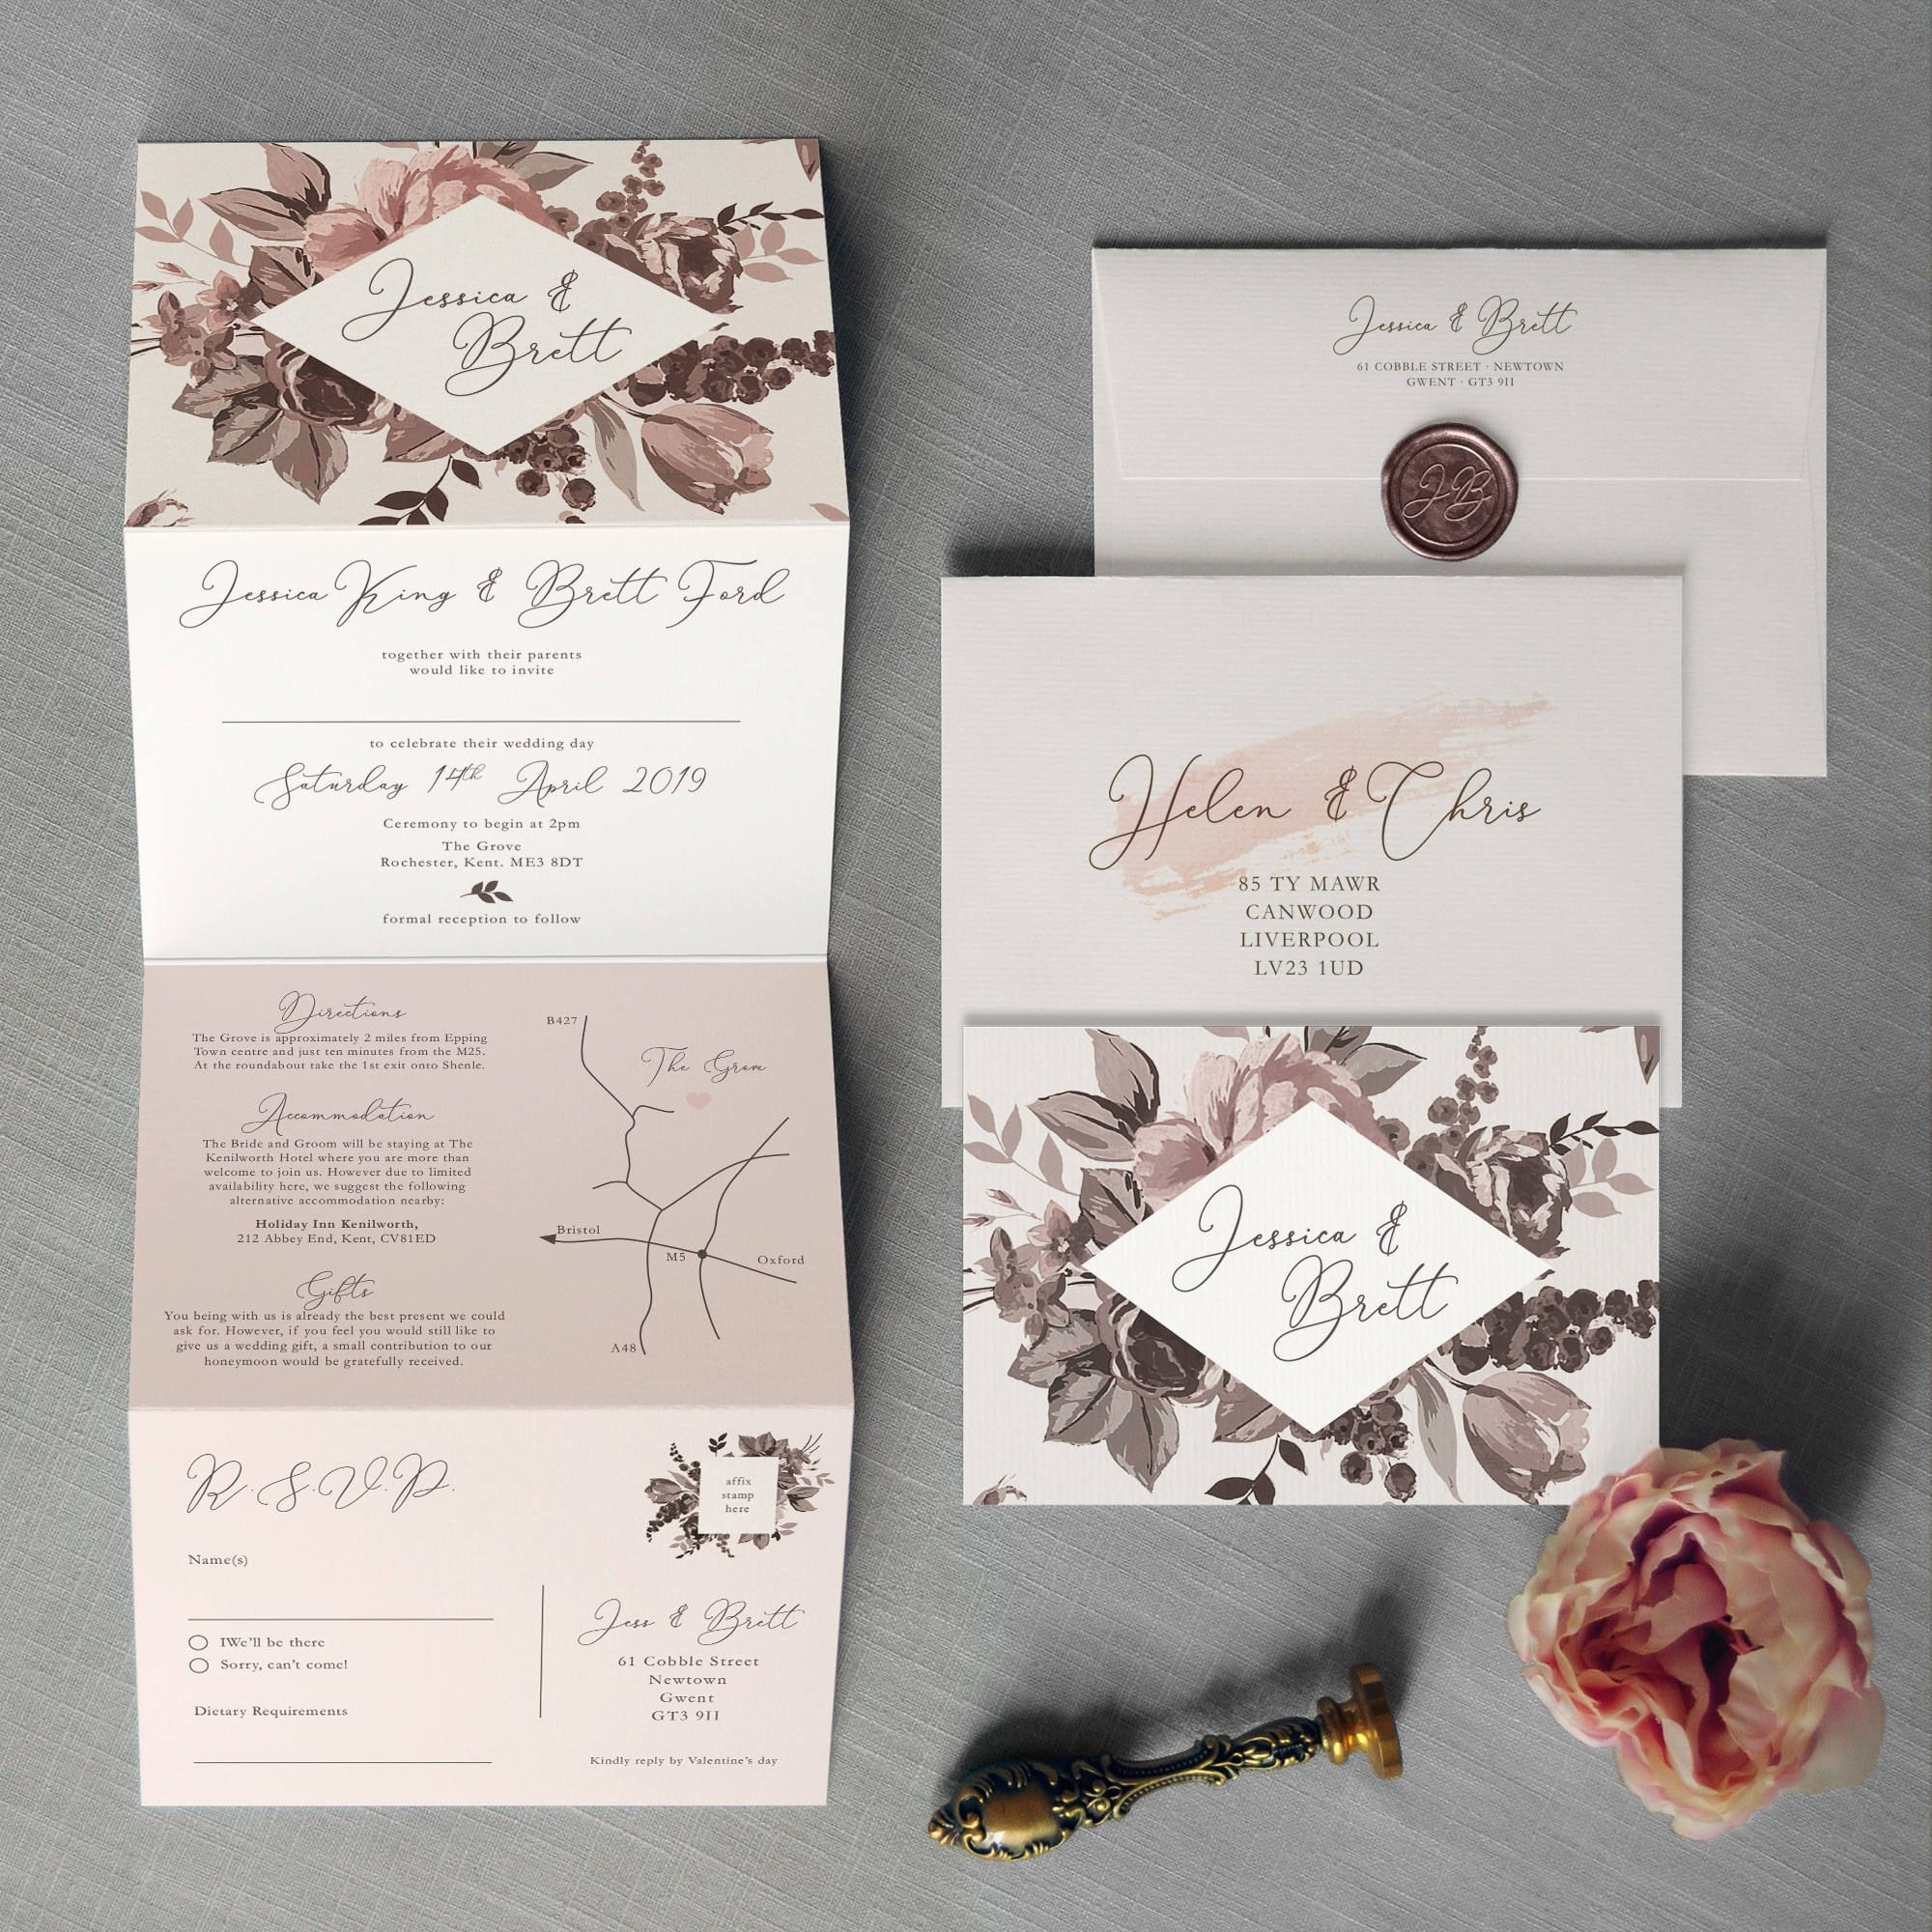 Belle Concertina Wedding Invitations and Save the Date